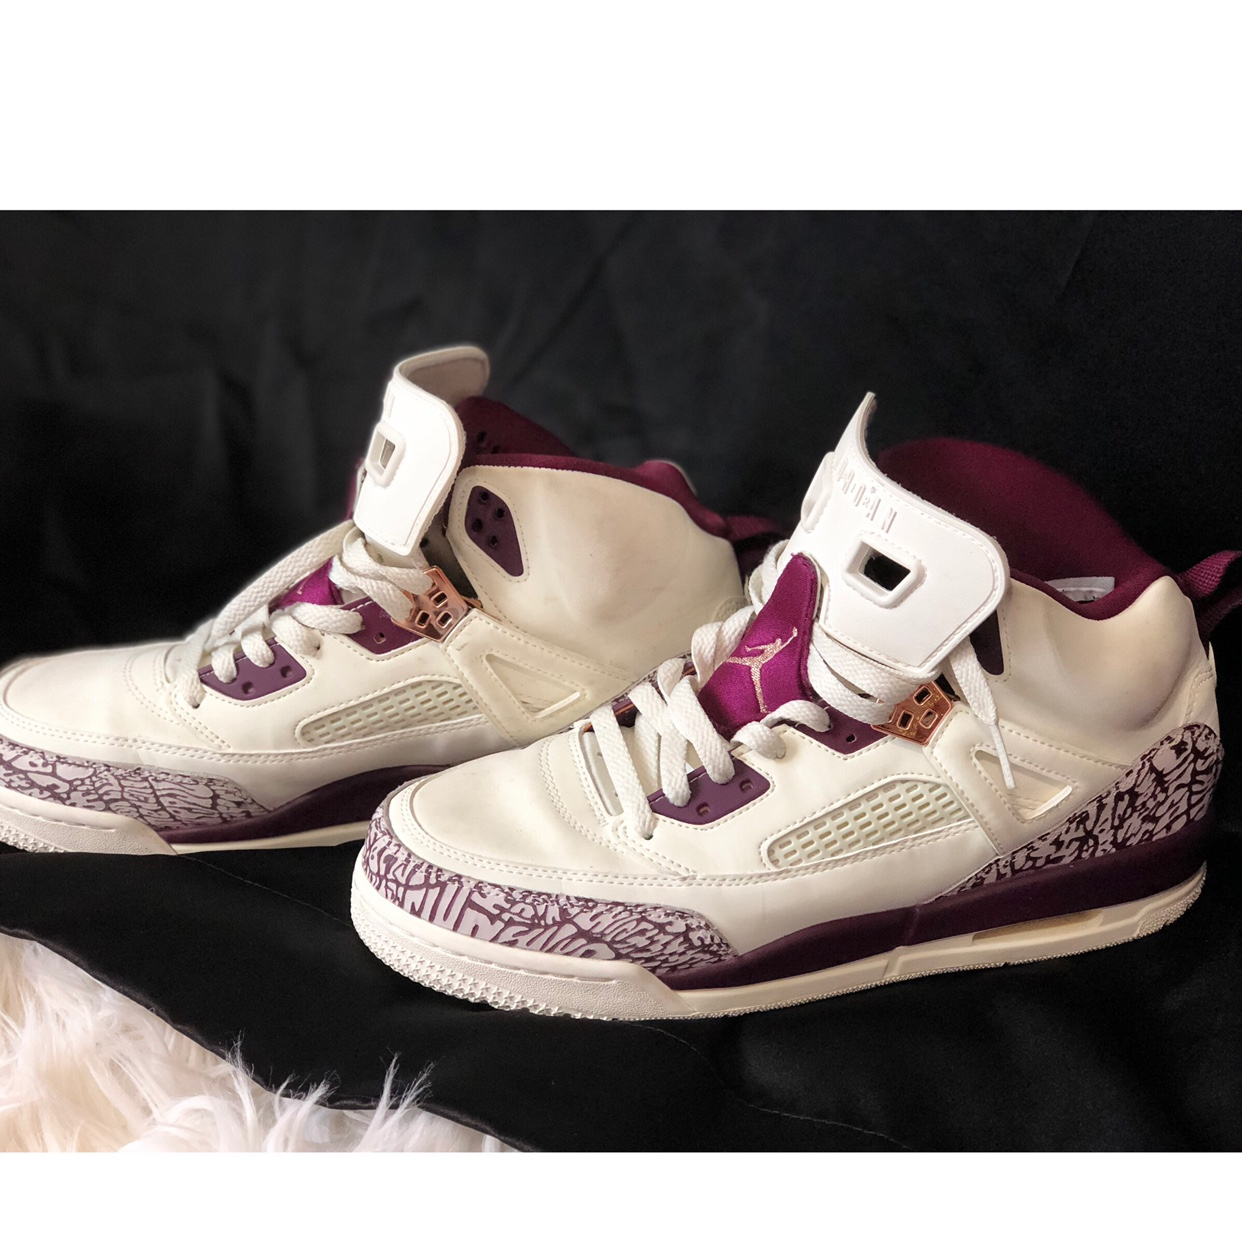 info for 48aab 6163d Jordan Retro 3. Maroon and rose gold details are... - Depop